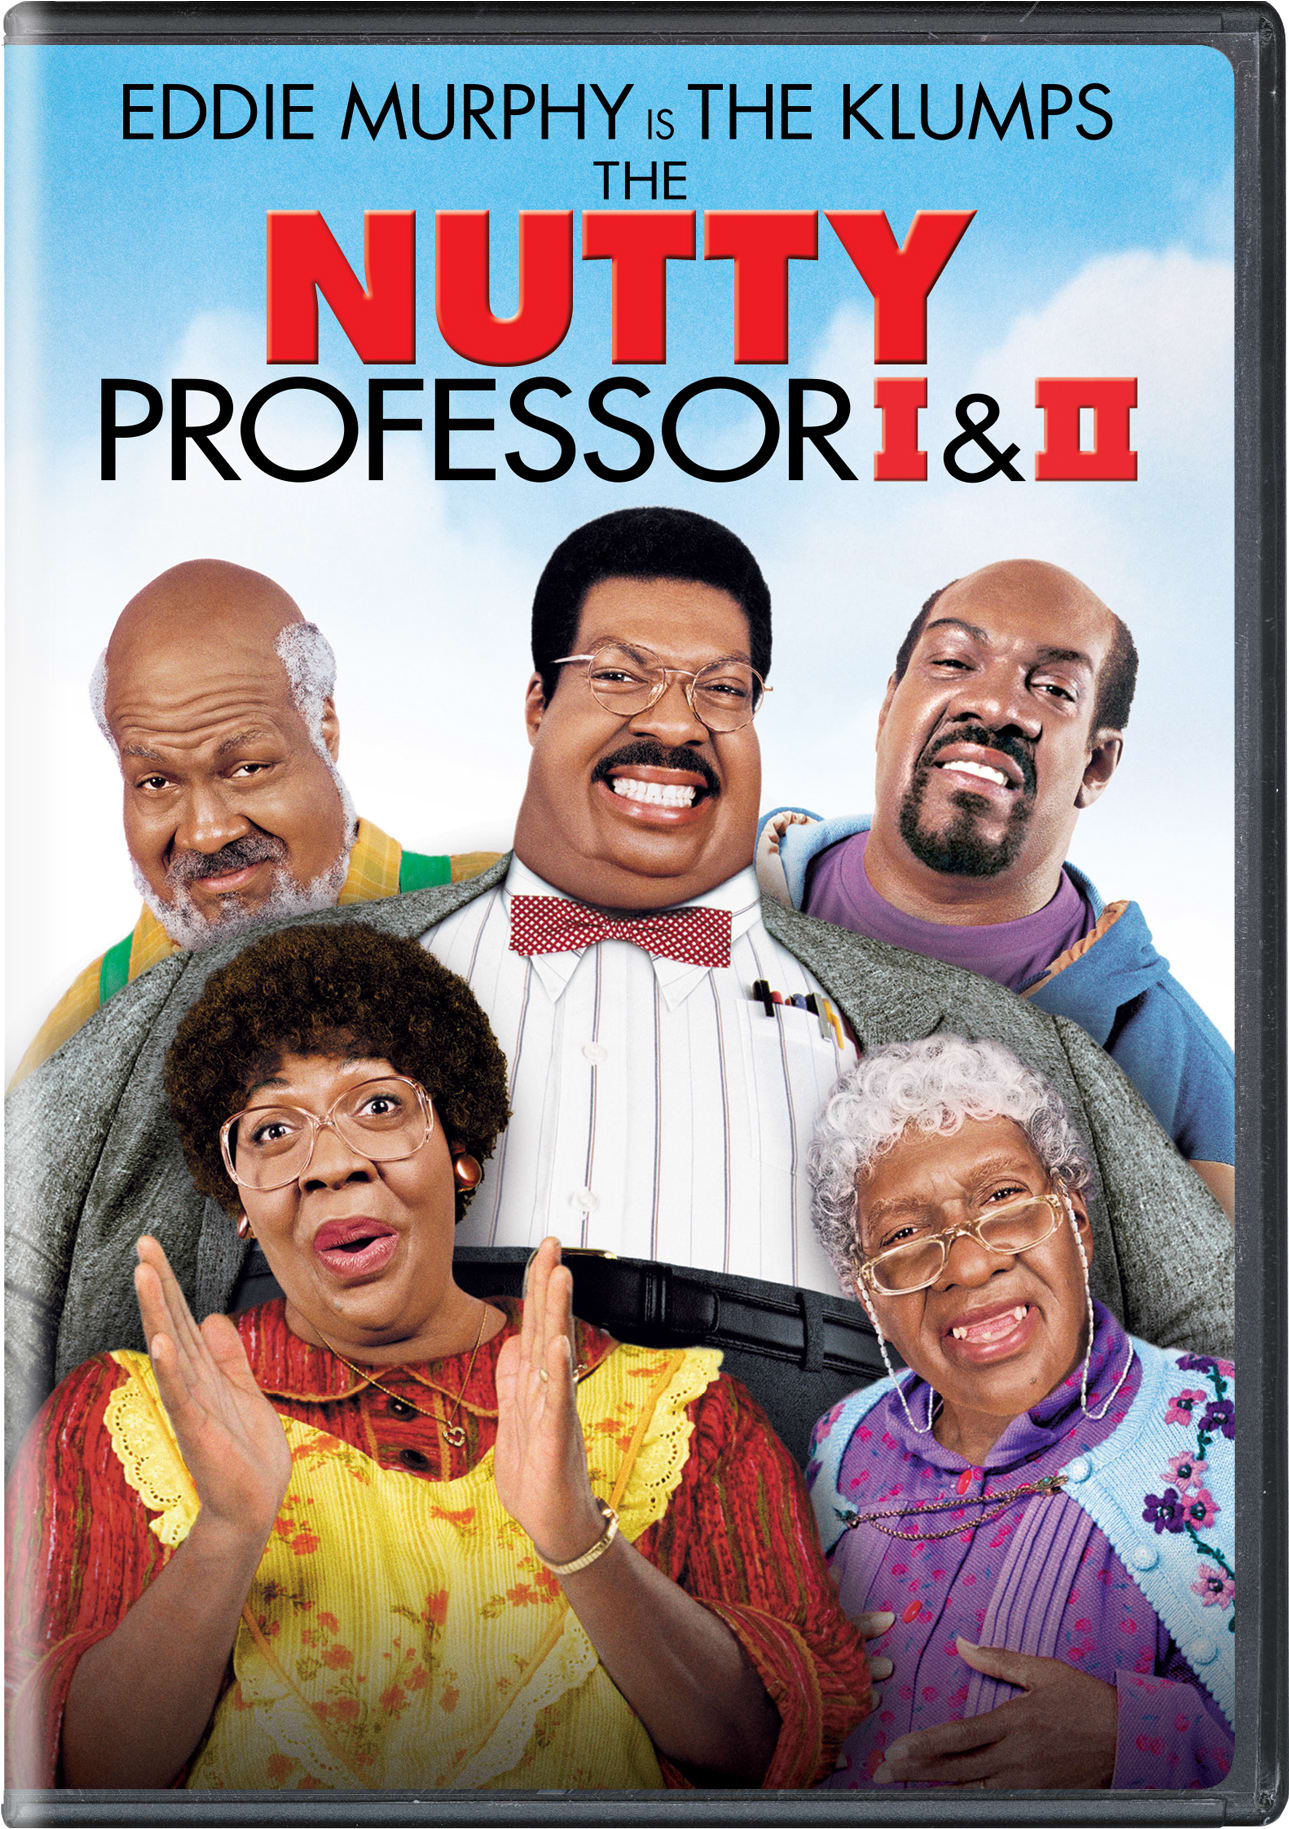 The Nutty Professor I & II [DVD]